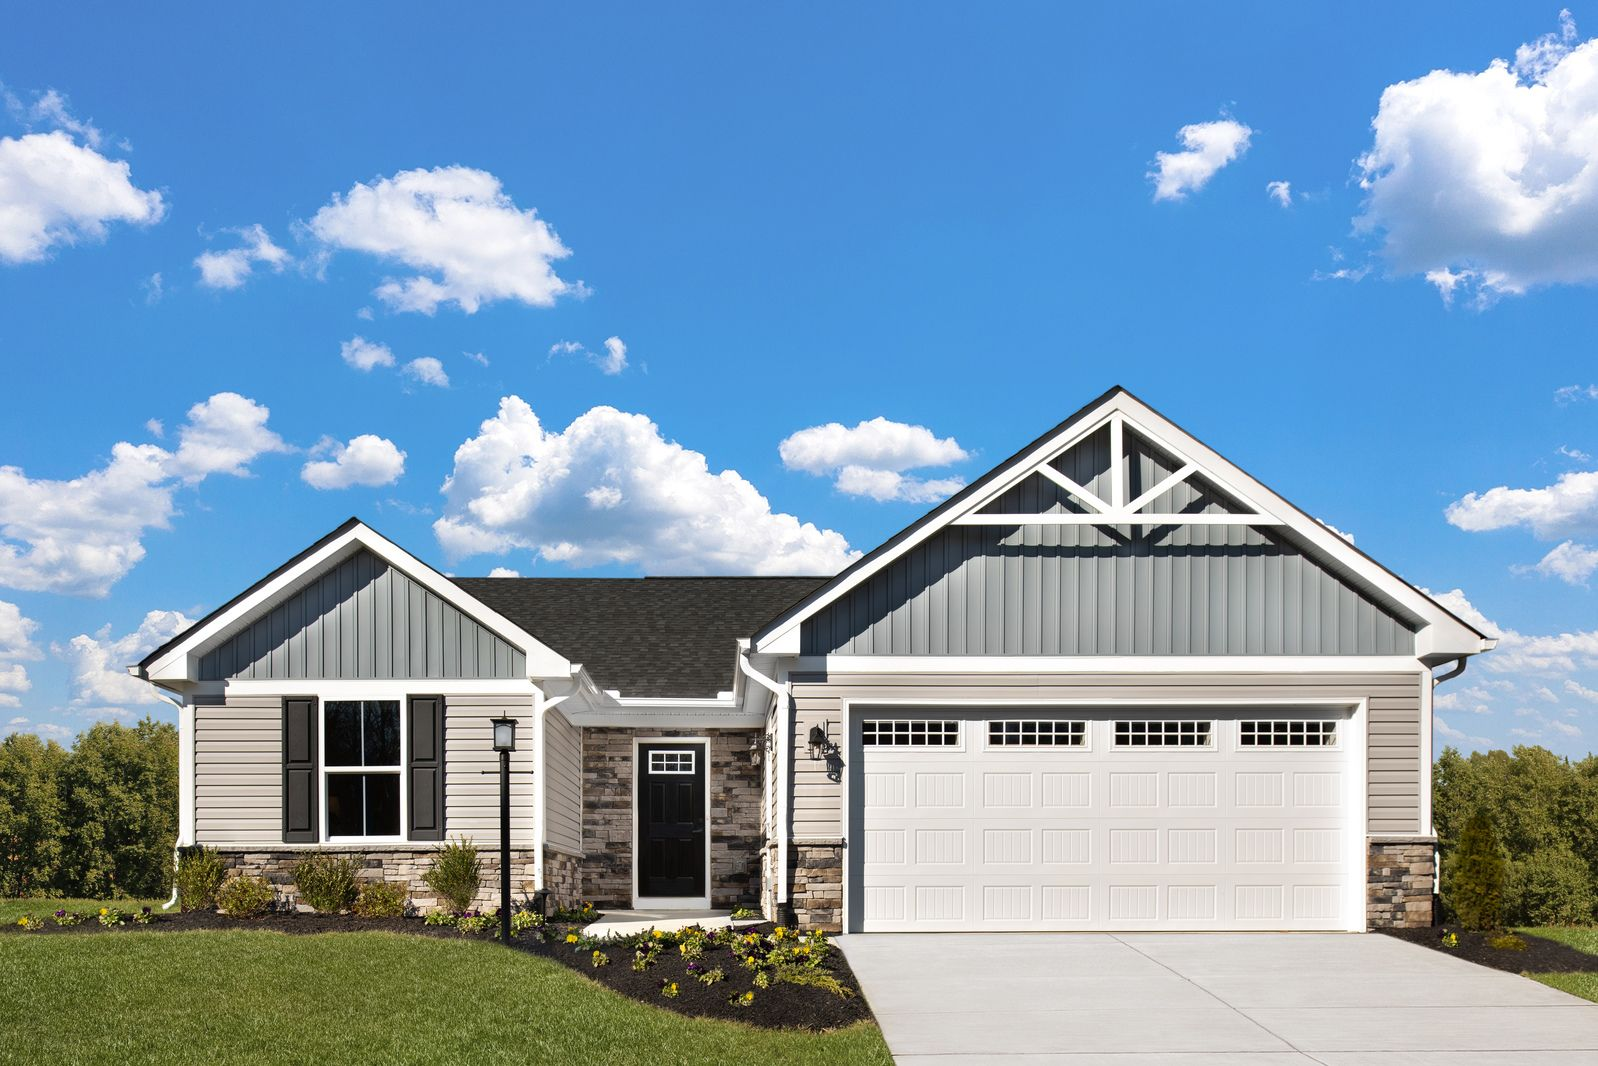 Become a Charlestown Crossing VIP!:Click here to Join our VIP Listto receive special VIP pricing and incentives. Plus, receive new updates on the community and preview our model homes before we open to the public!